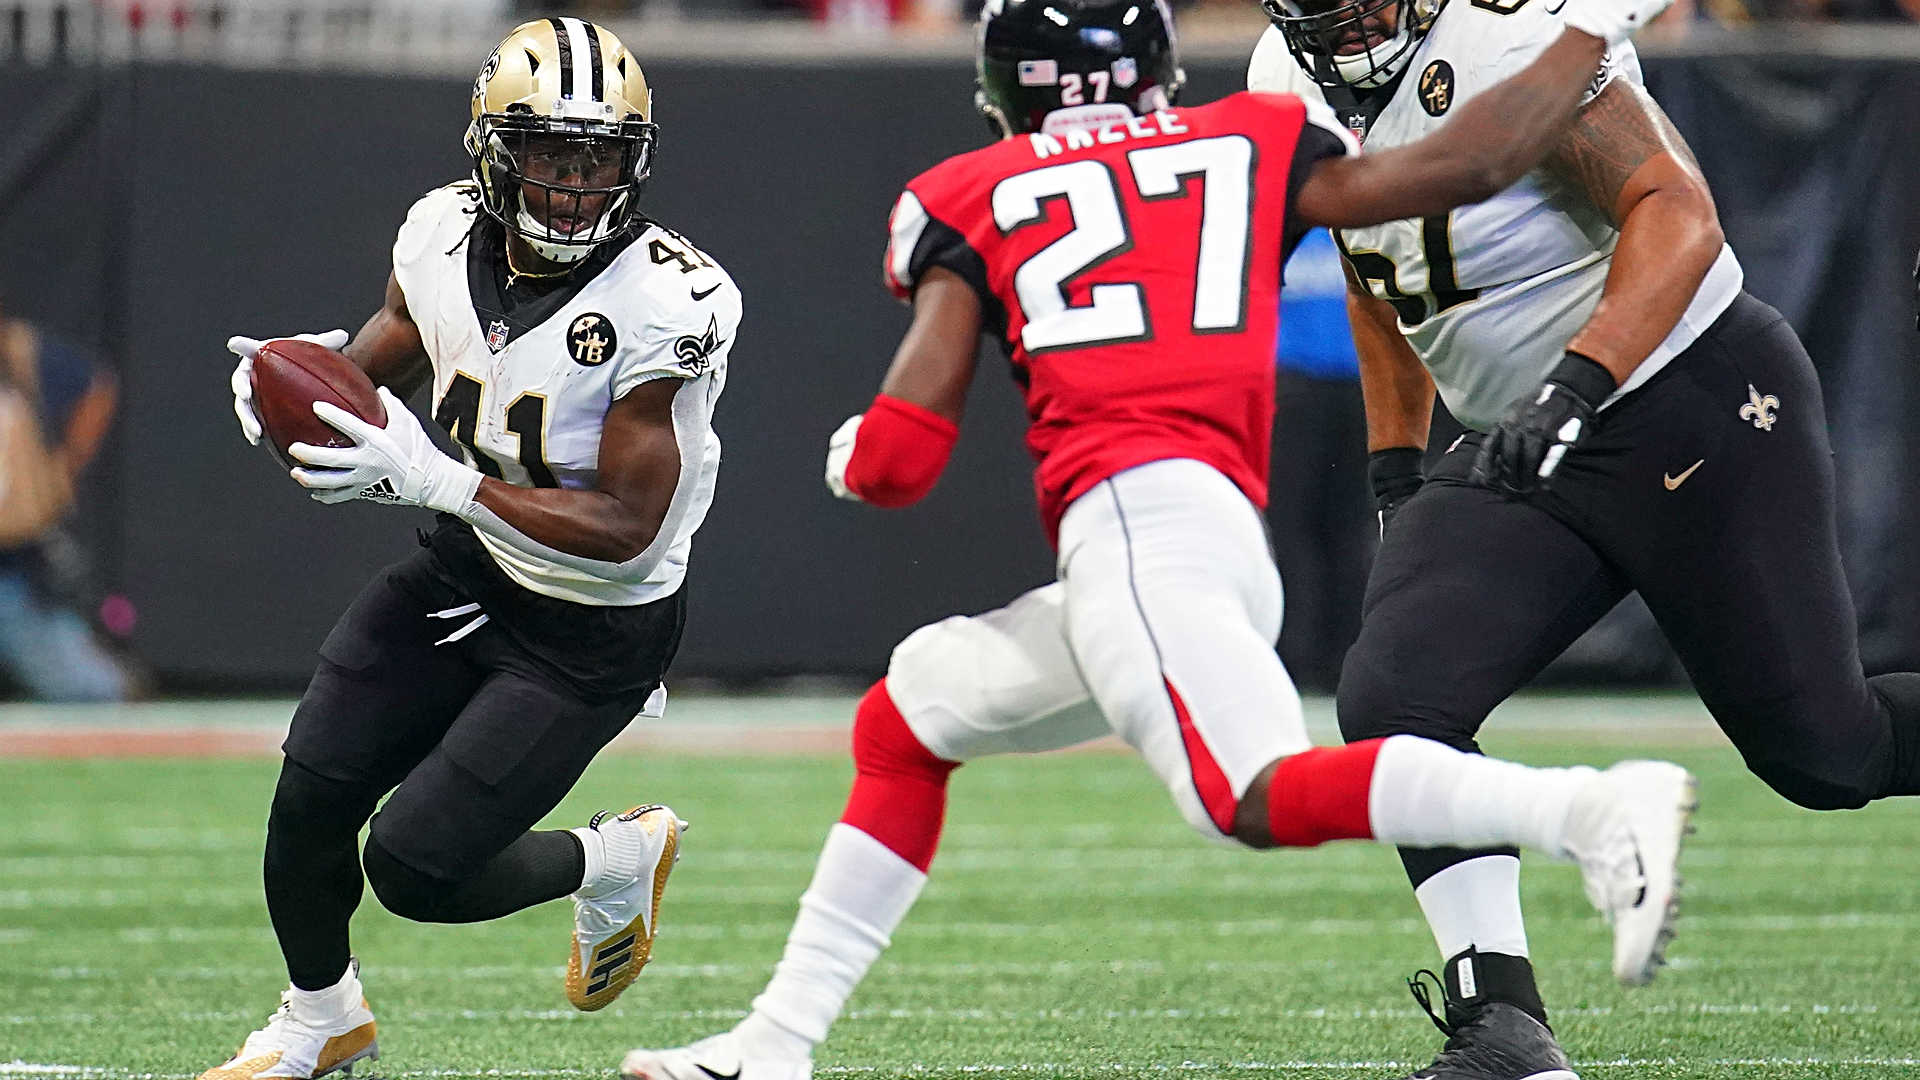 Saints vs falcons betting prediction best bets to place on roulette